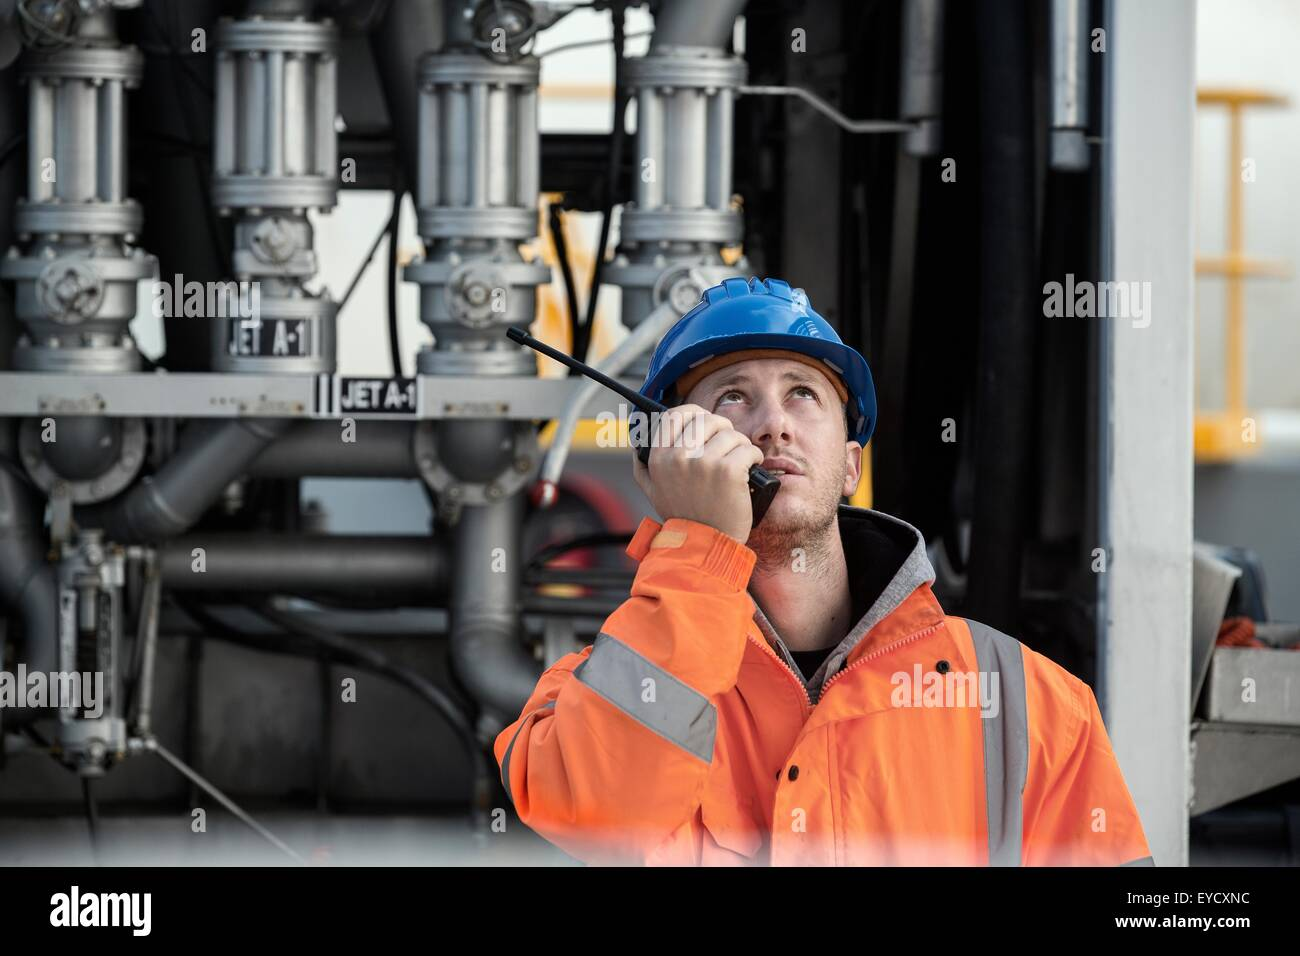 Male worker speaking on two way radio at fuel depot Stock Photo